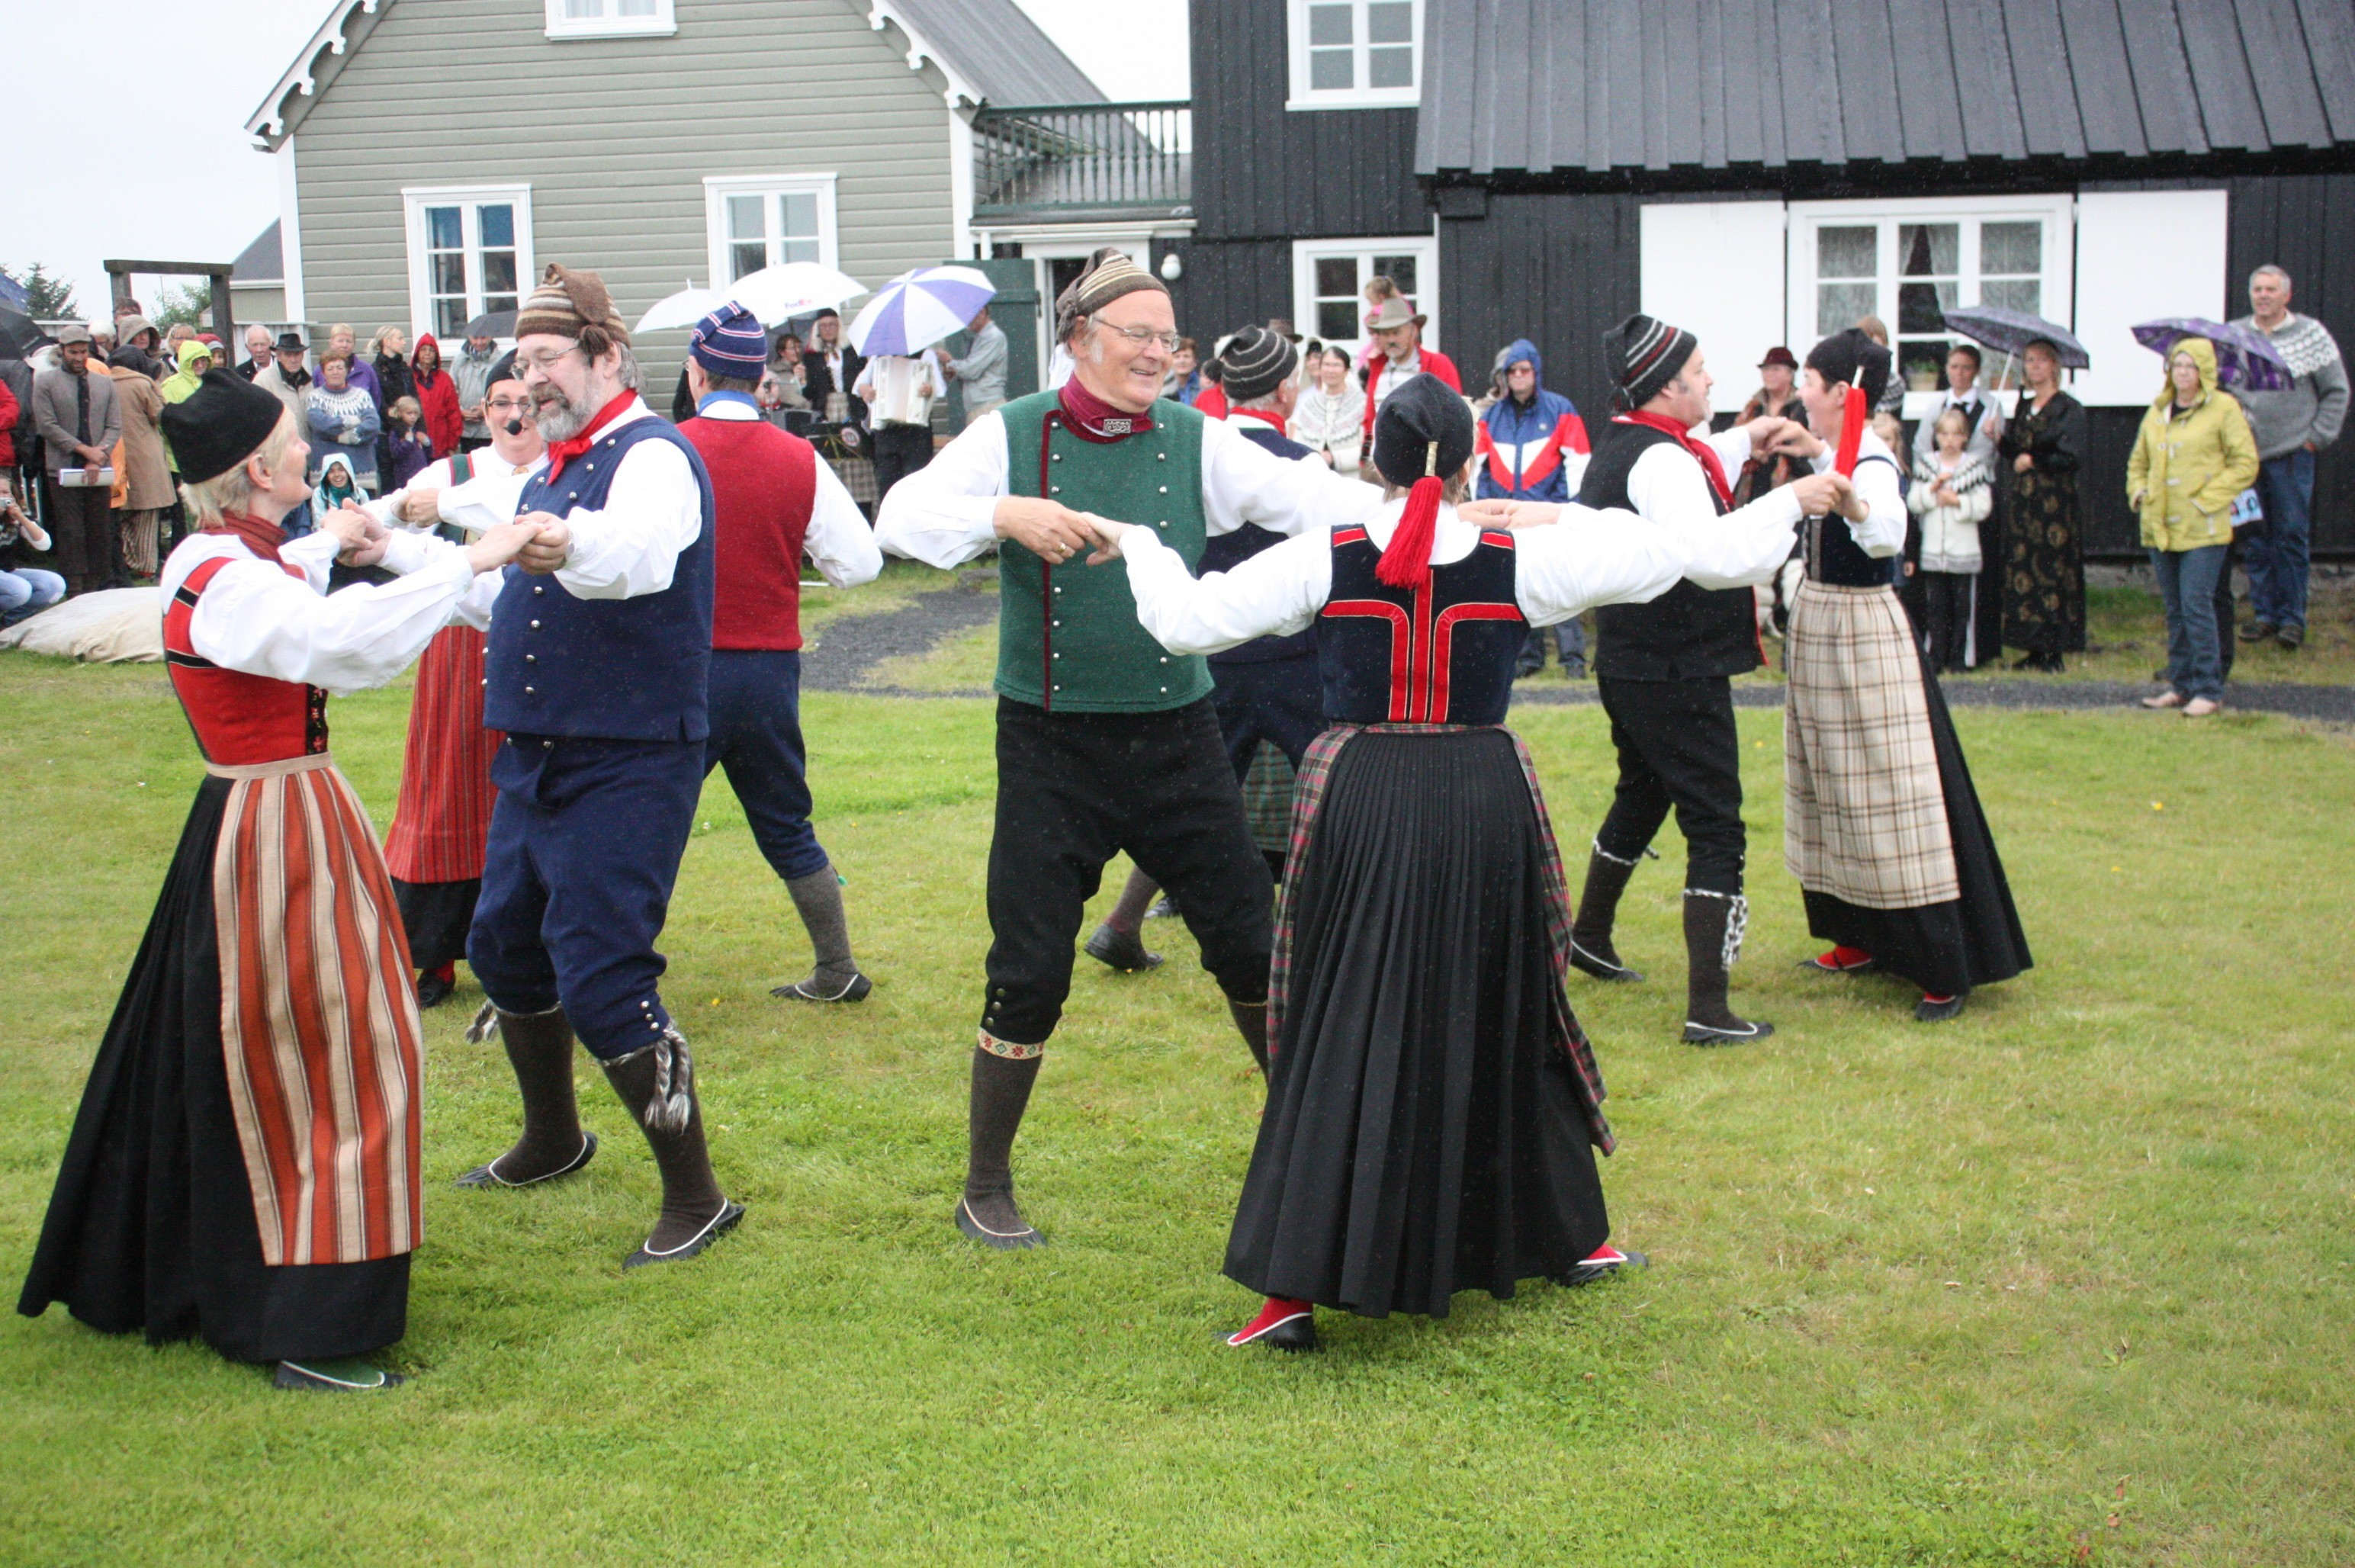 Árborg - A Whirlwind Cultural Tour - Icelandic Times